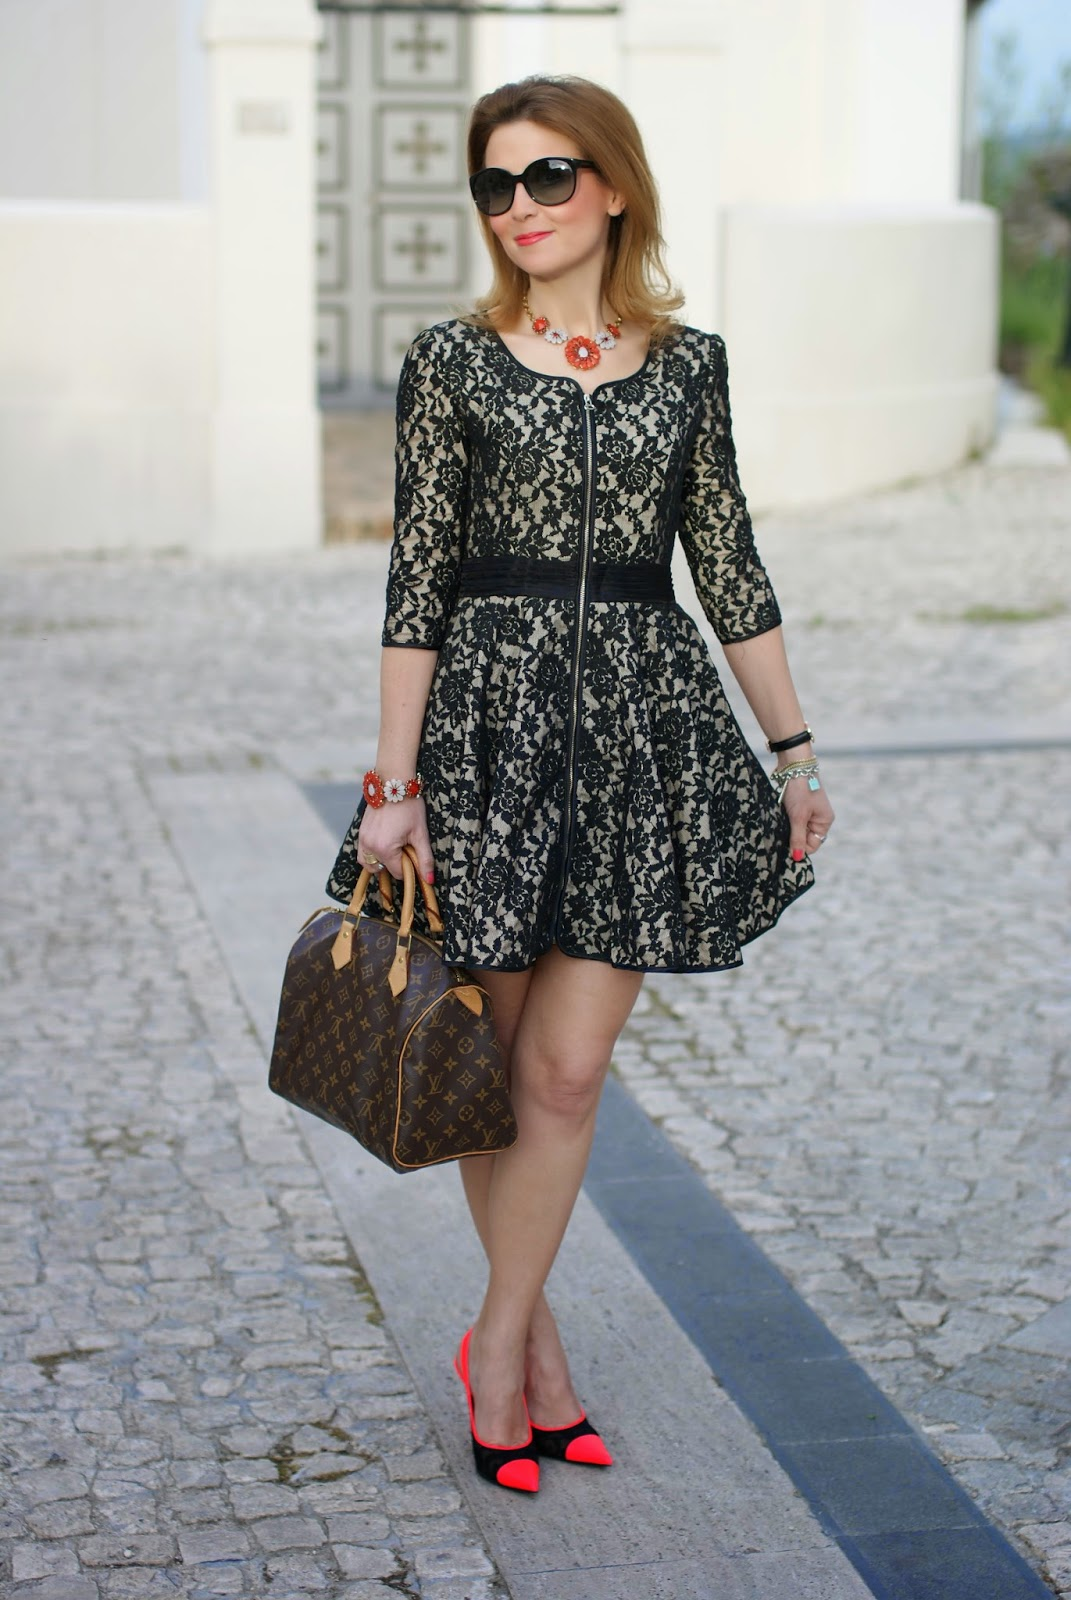 Blackfive black lace dress, Sodini bijoux, Louis Vuitton Speedy bag, Nando Muzi heels, Fashion and Cookies, fashion blogger